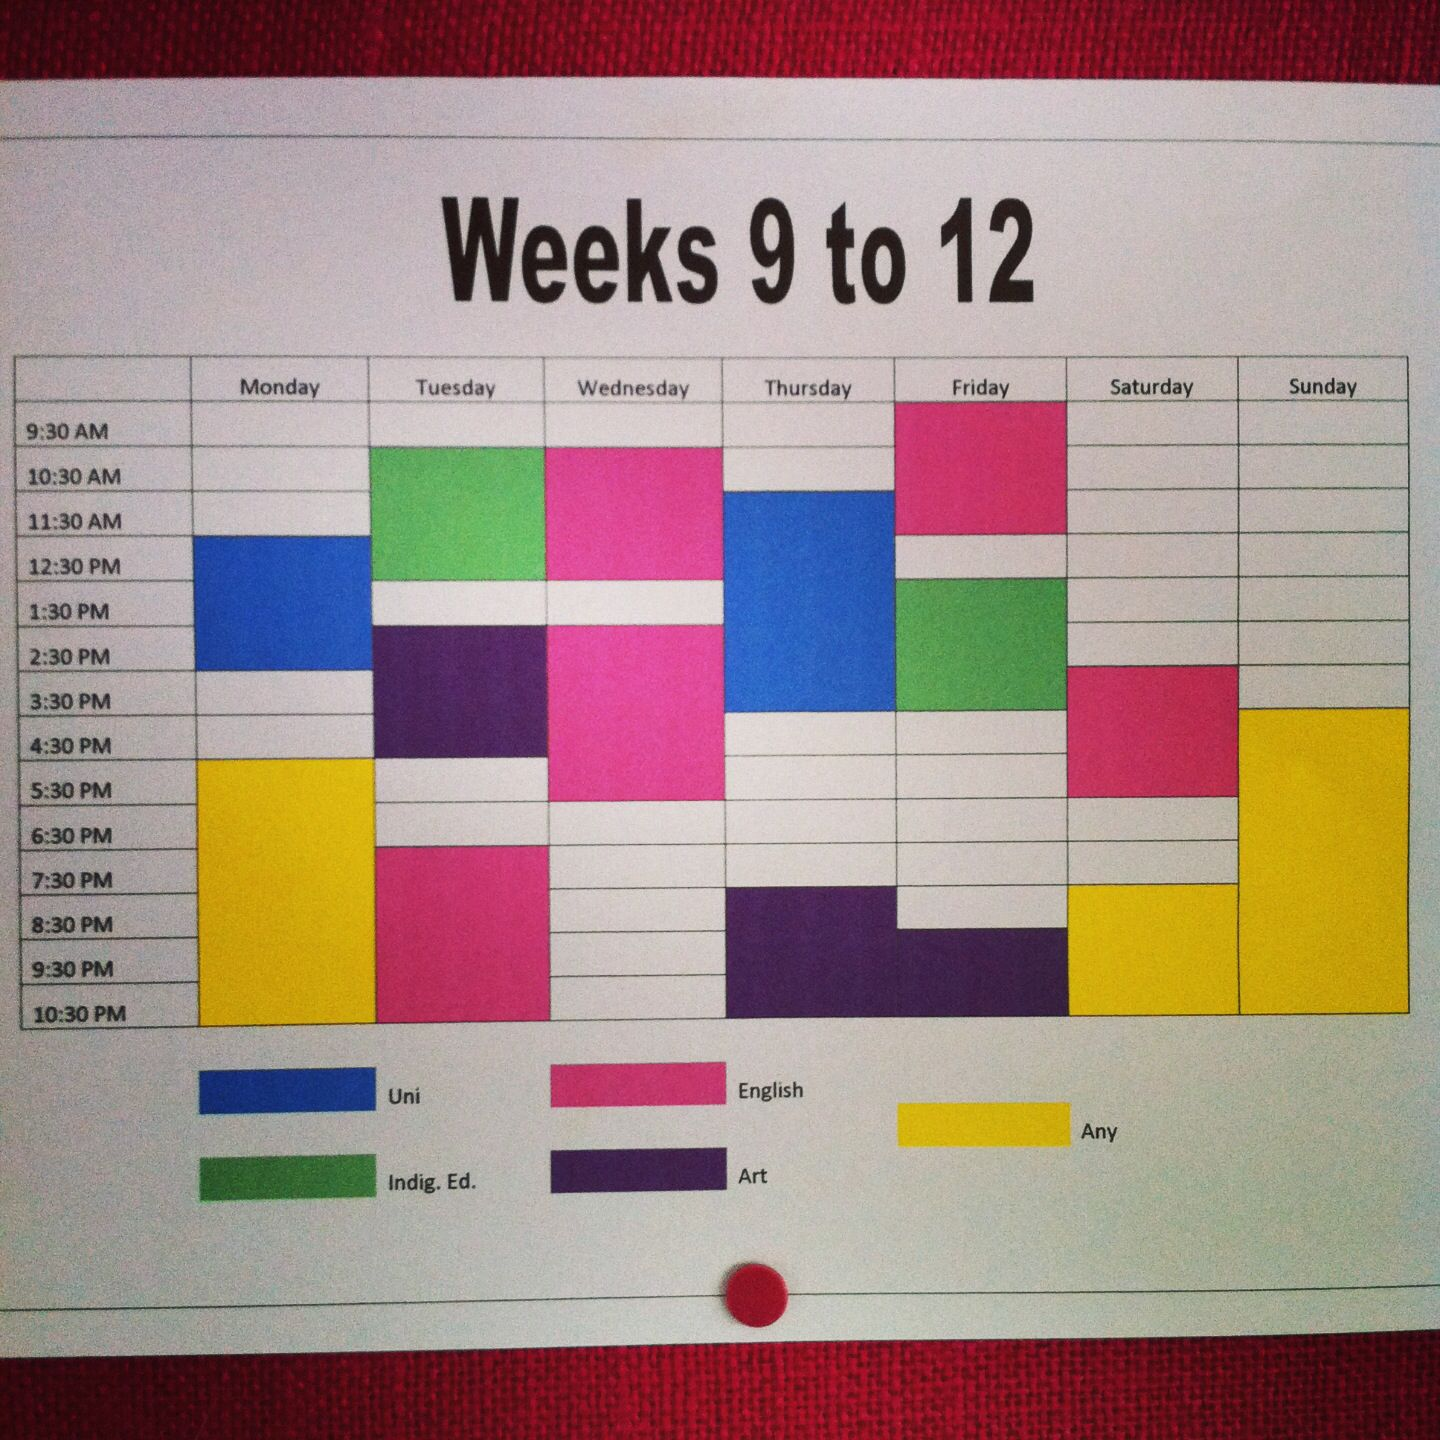 My Personal Timetable For University Studies Timetables Are A Fantastic Tool To Keep Organised University Timetable University Studying Study